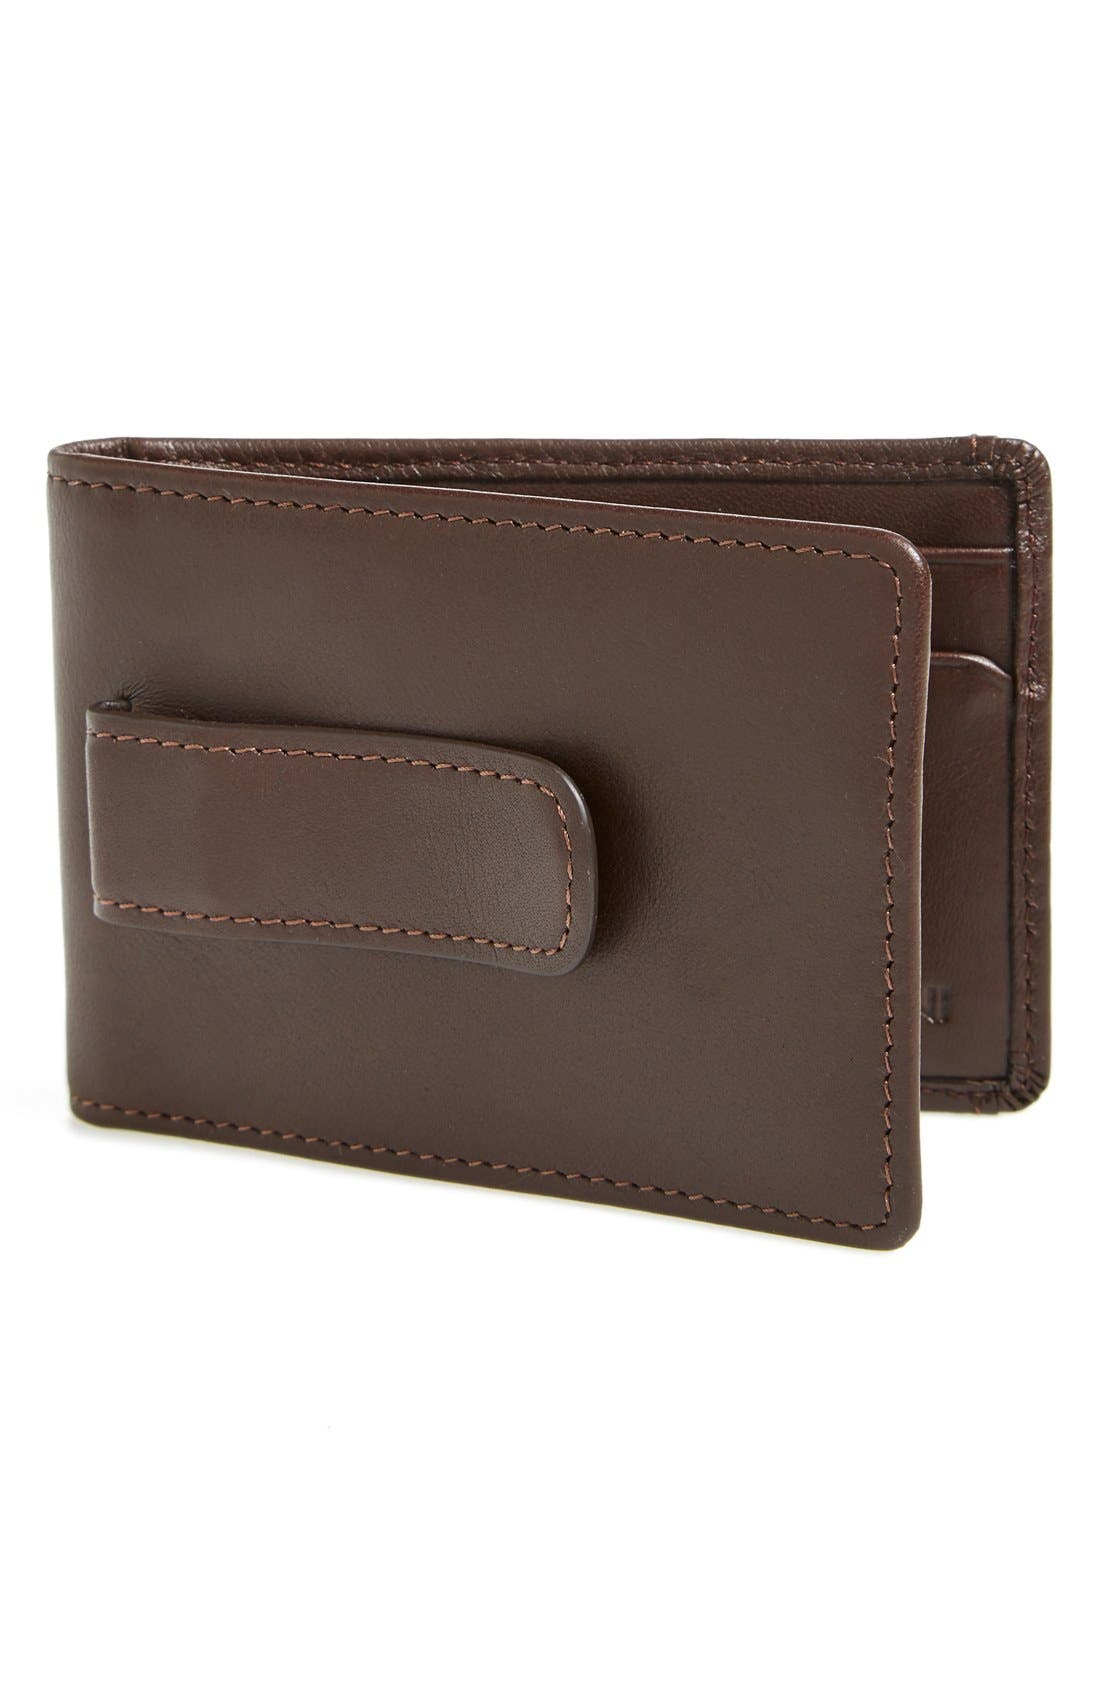 Boconi 'Collins' Money Clip Wallet